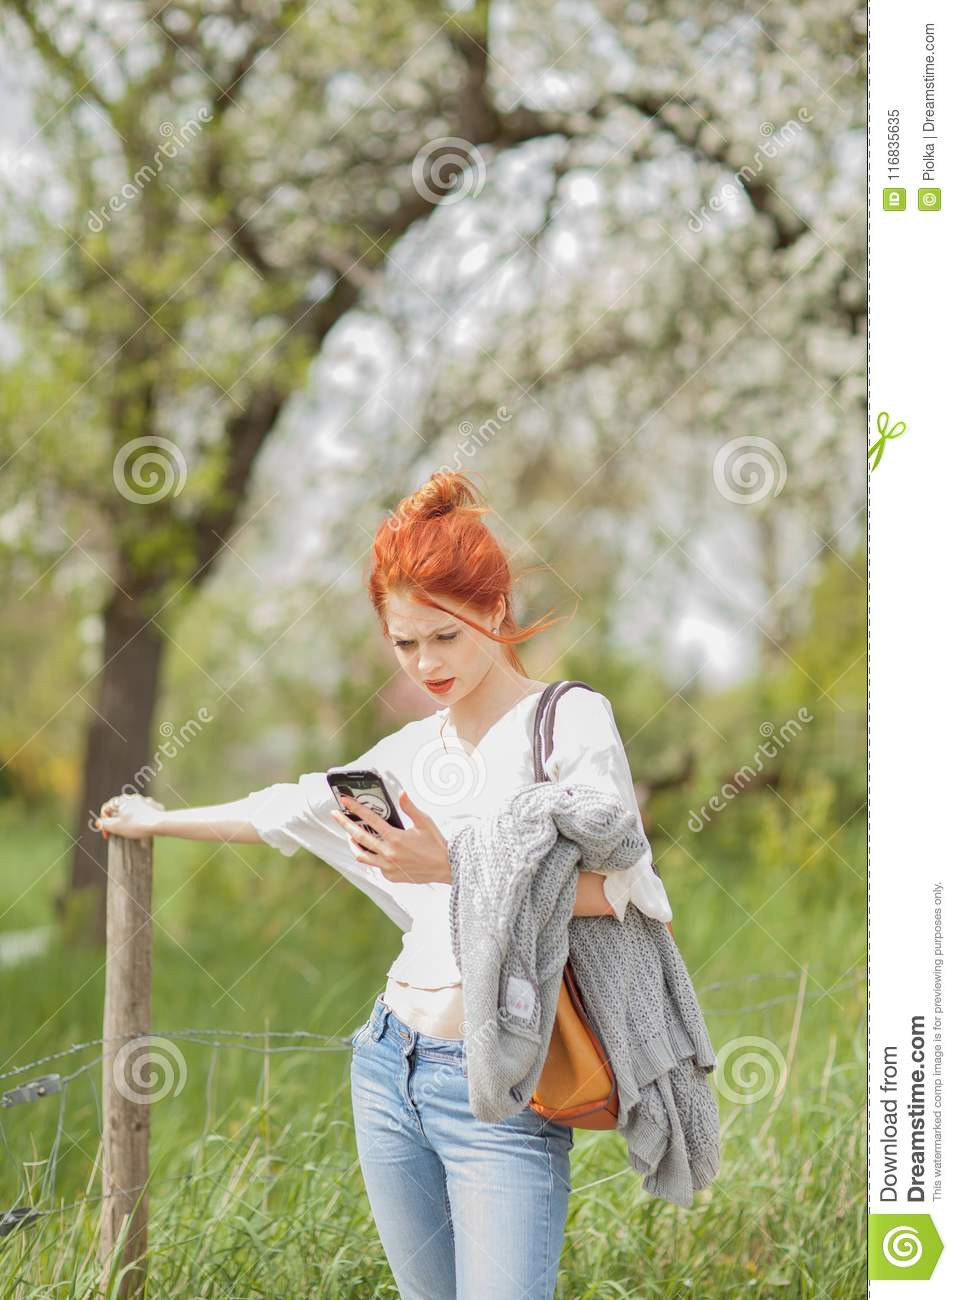 Beautiful young woman walking outside in a field, looking at her cell phone